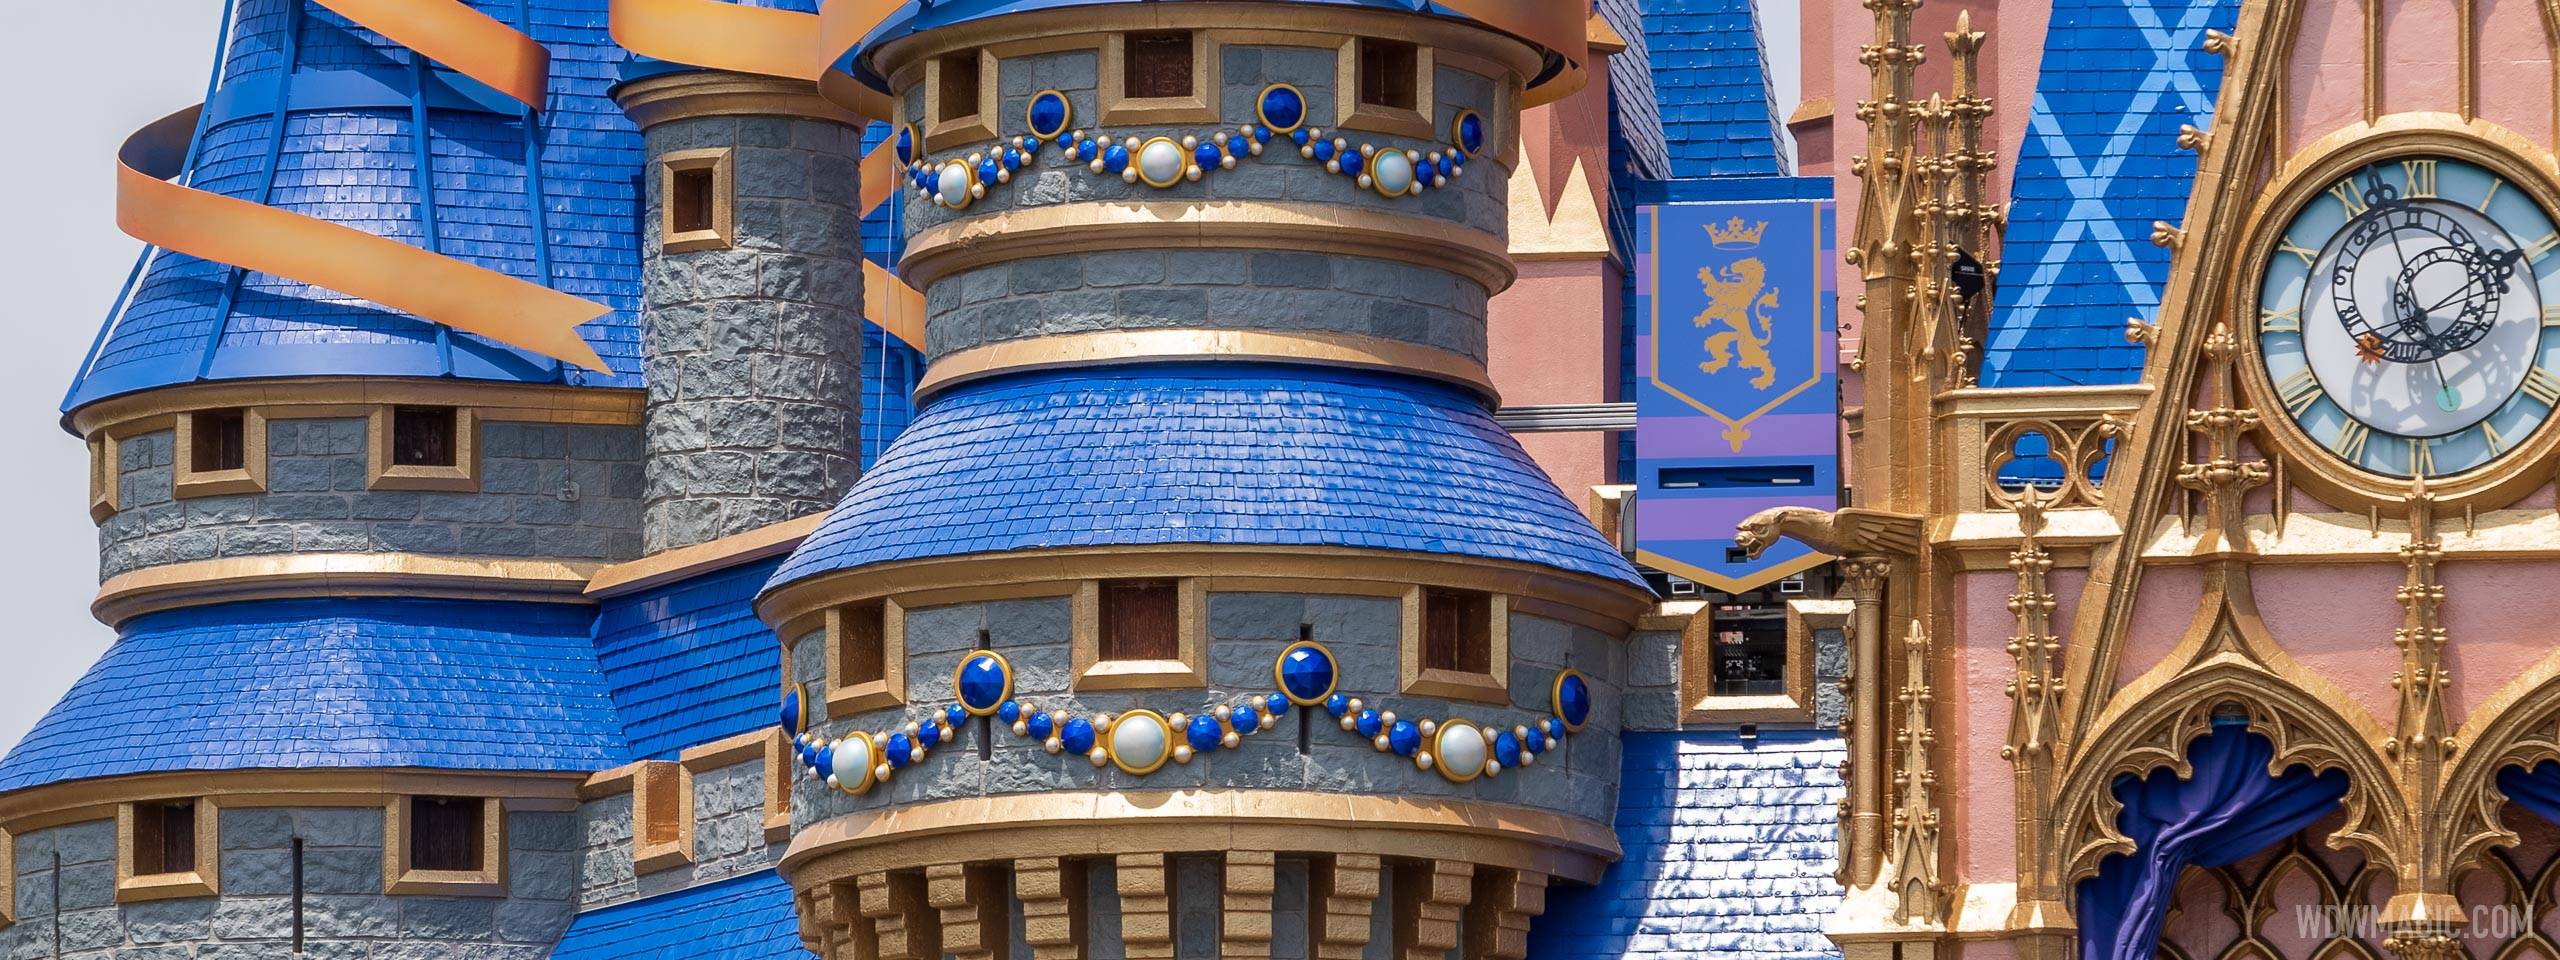 More ribbons and jewels adorn the spires of Cinderella Castle as preparations for Disney World's 50th continue